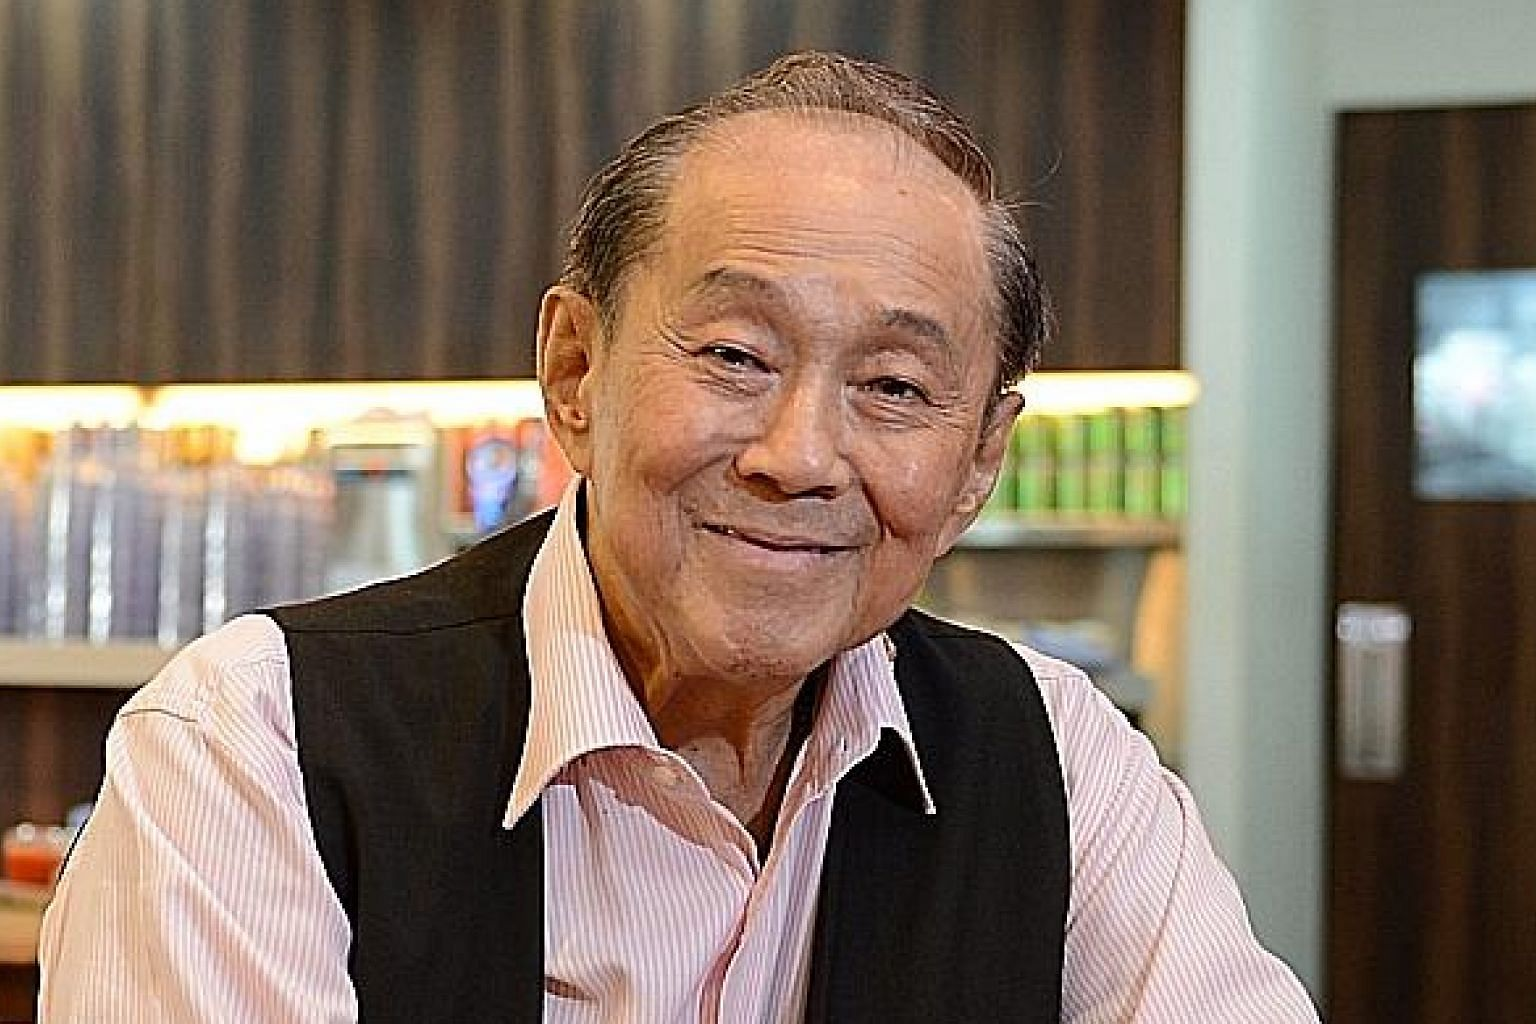 Mr Wee Toon Ouut founded Wee Nam Kee Chicken Rice in 1989 and oversaw its growth and expansion.